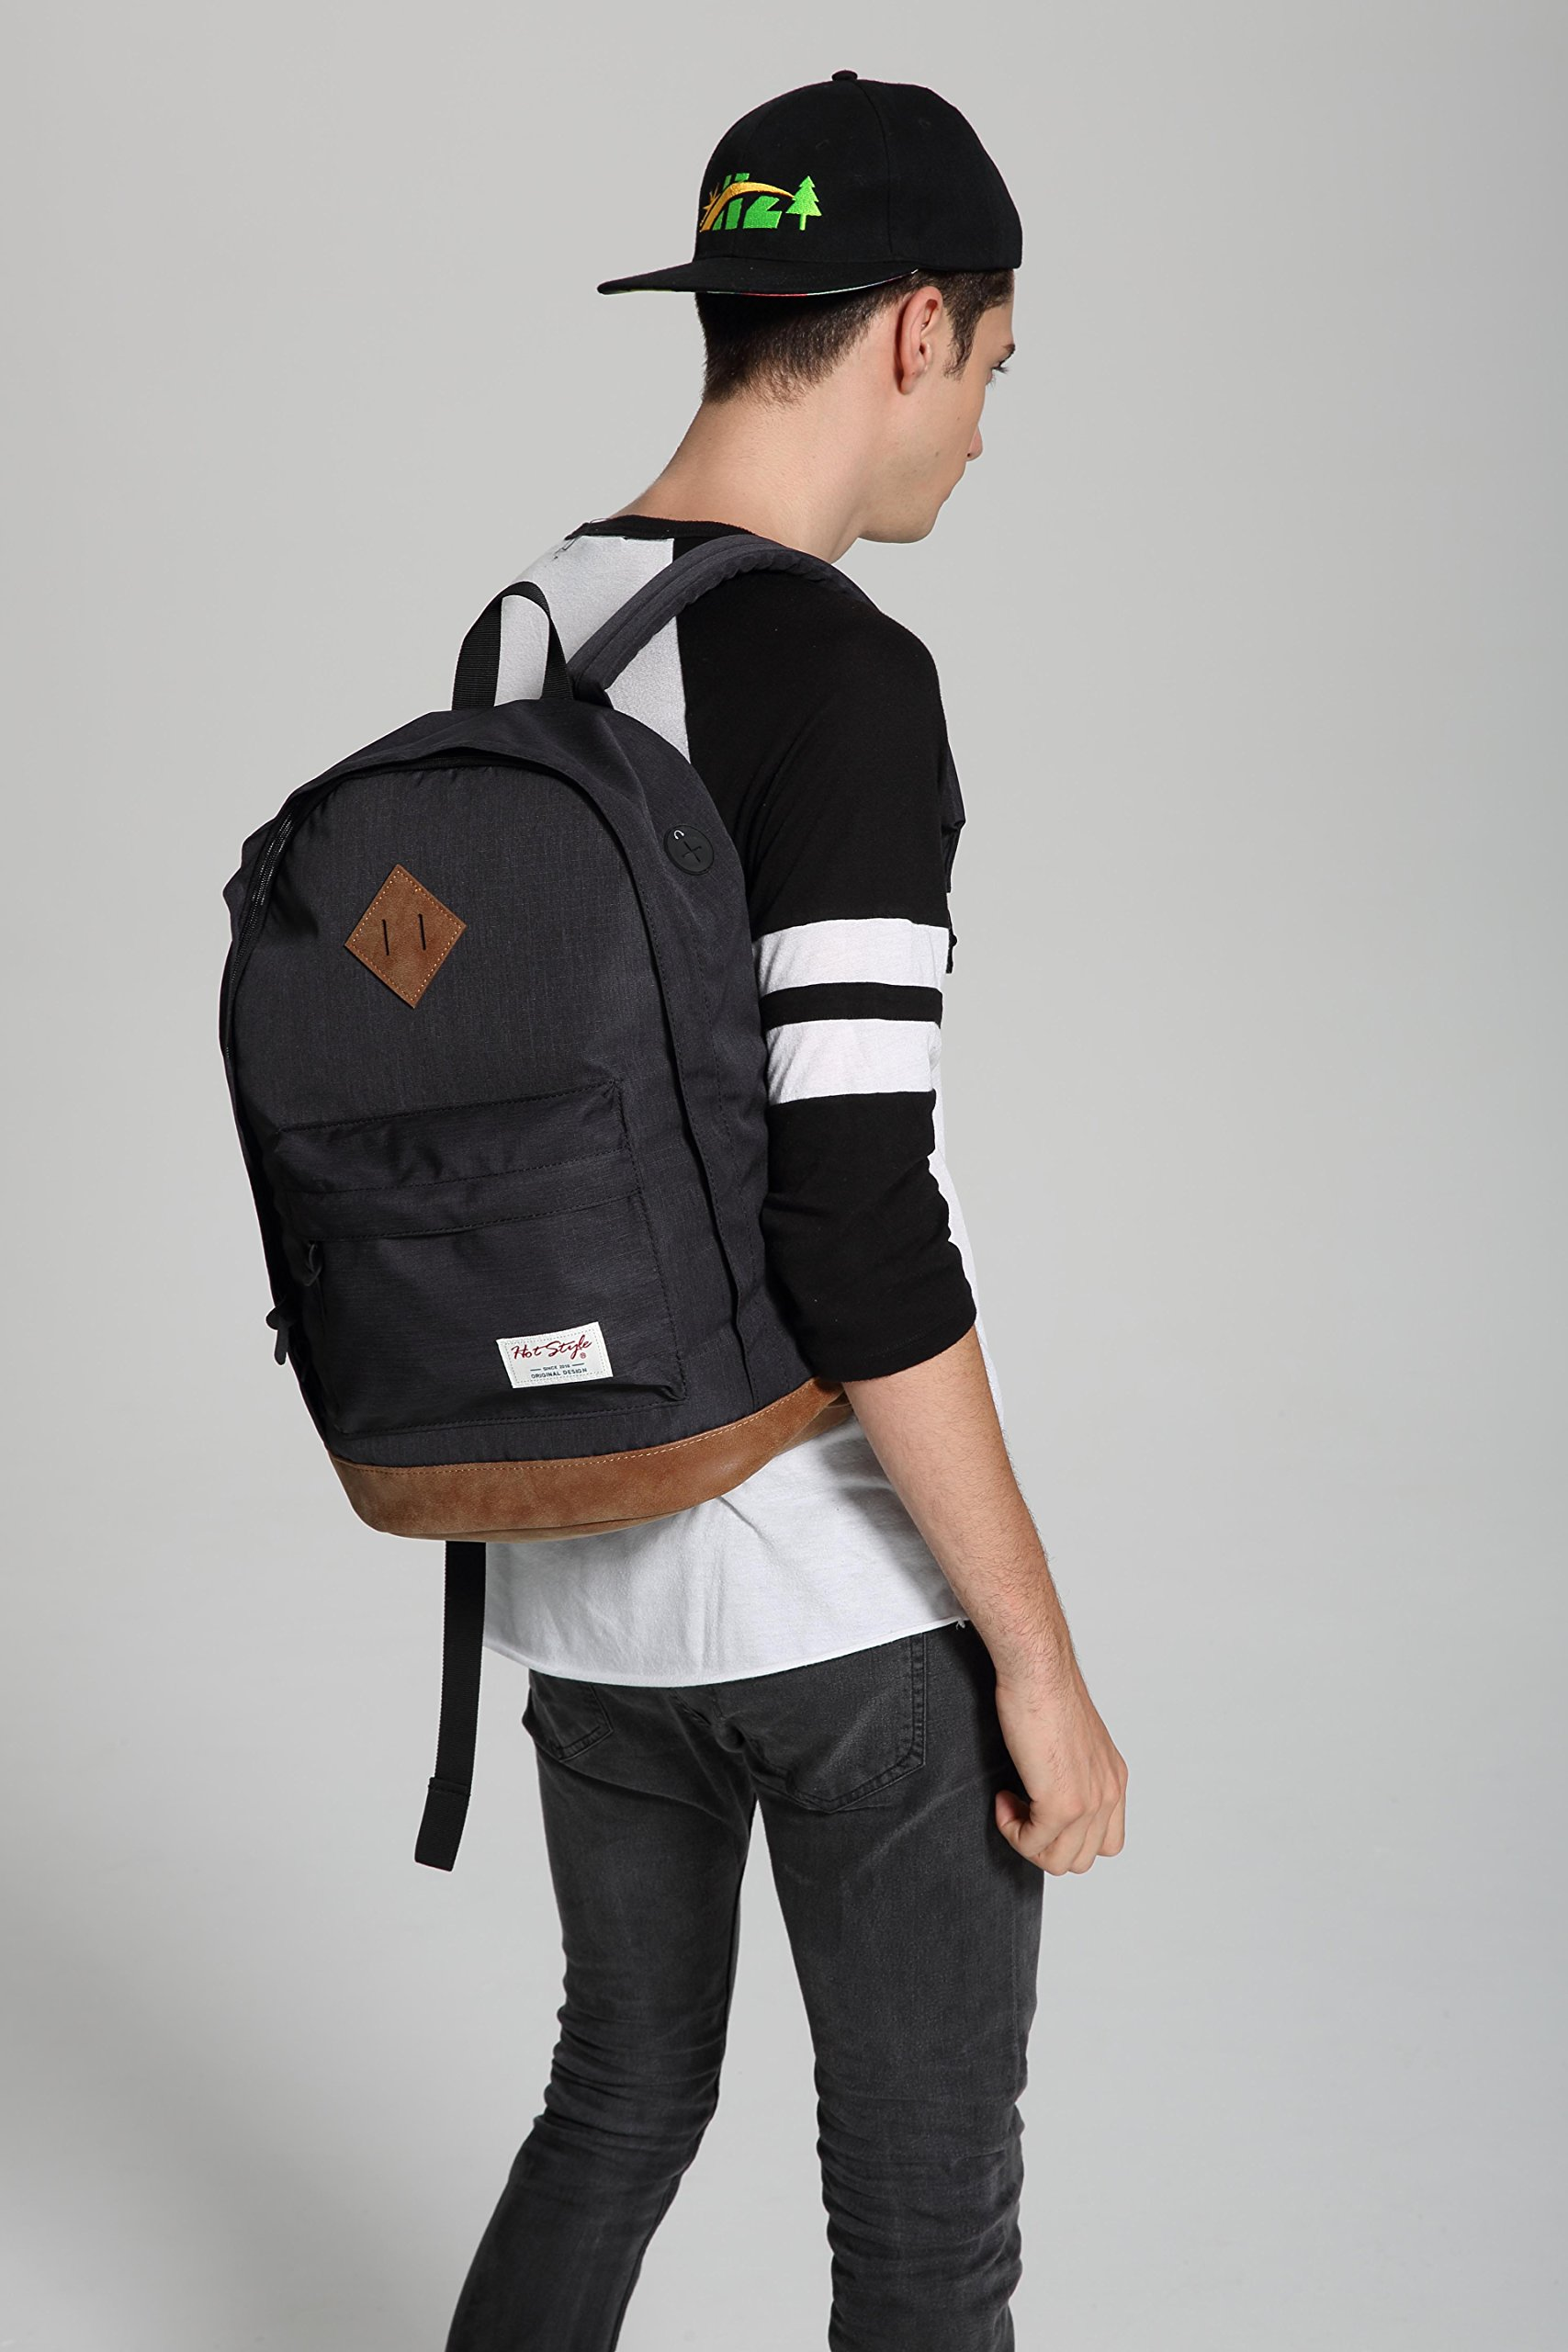 936Plus College School Backpack Travel Rucksack | Fits 15.6'' Laptop | 18''x12''x6'' | Black by hotstyle (Image #8)